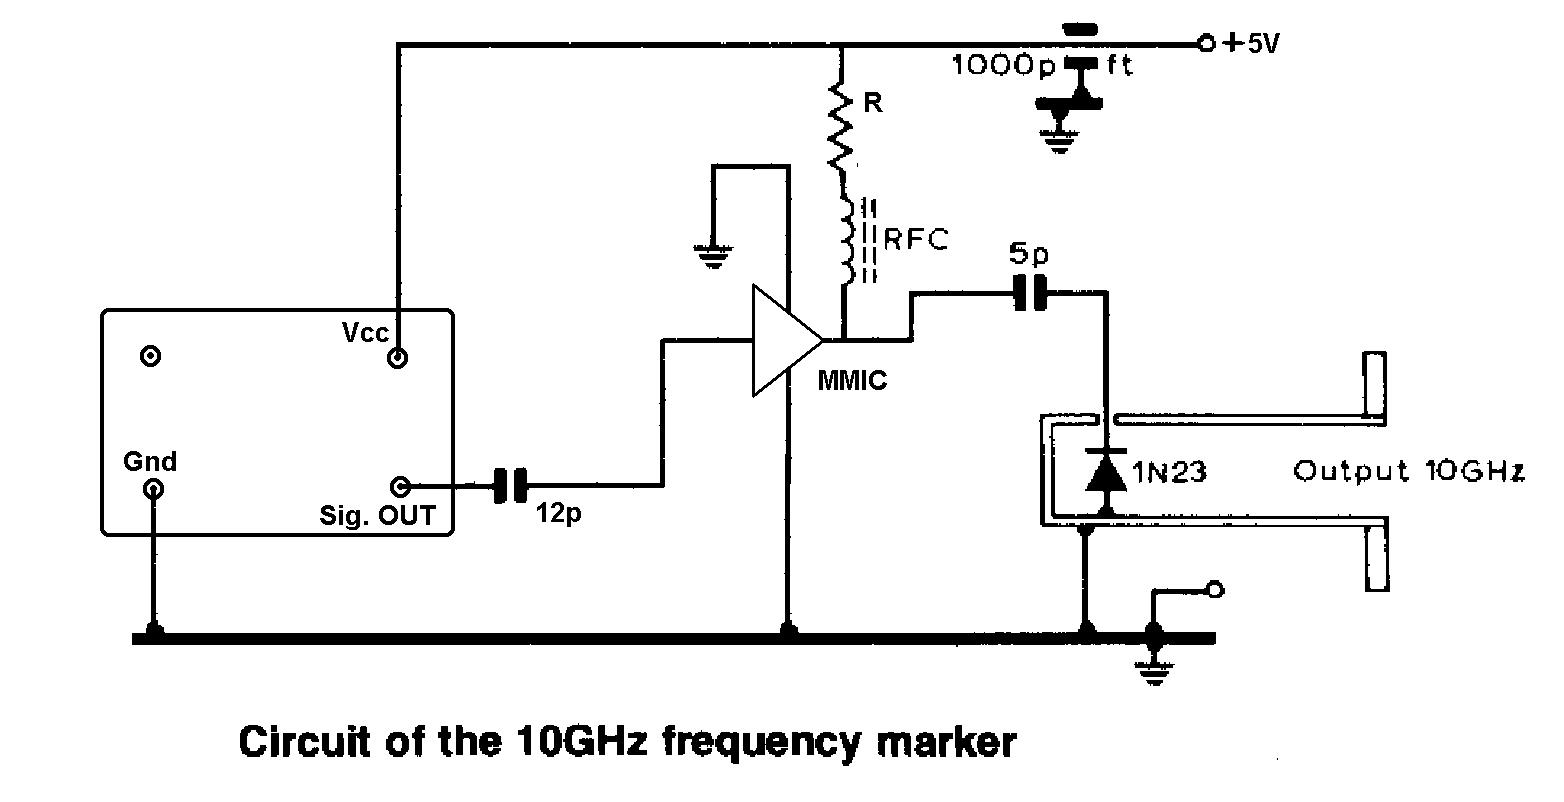 A Simple 10ghz Frequency Marker